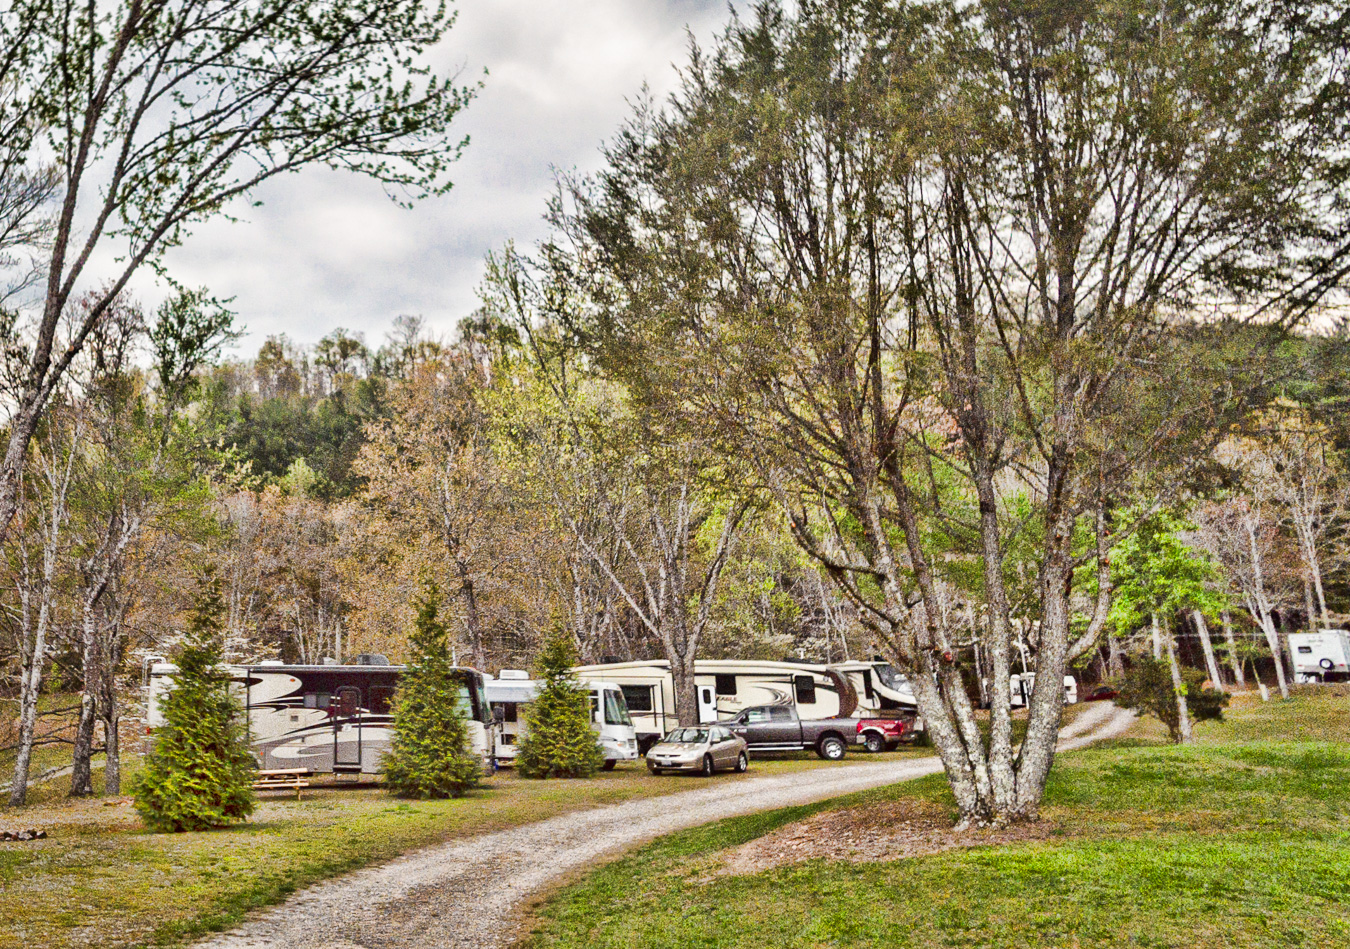 Recent Photos For RV Parks